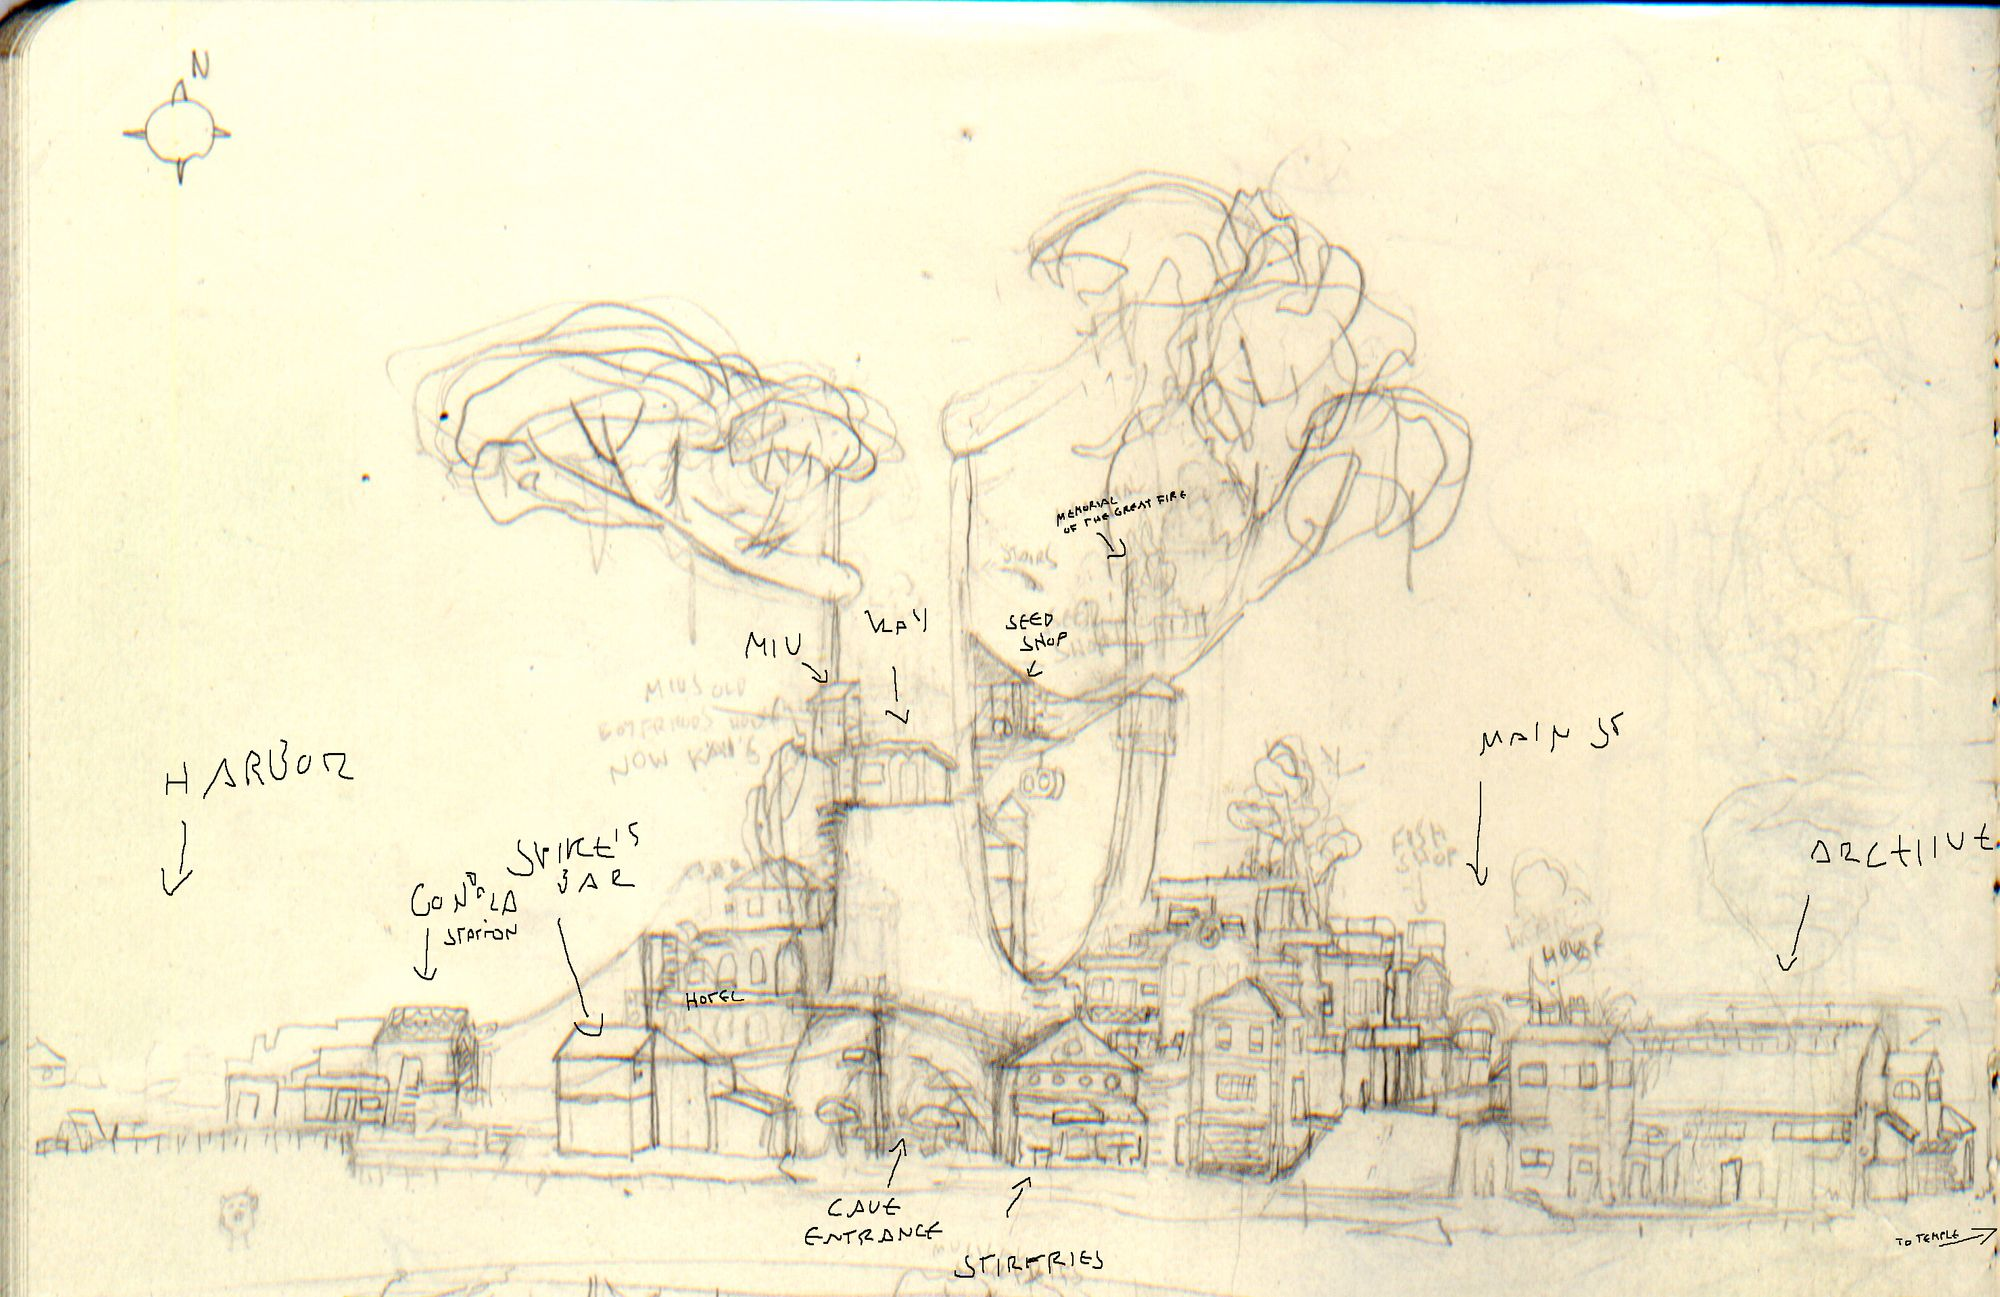 An annotated pencil sketch of Mutazione village from 2012, which shows where characters live and work.